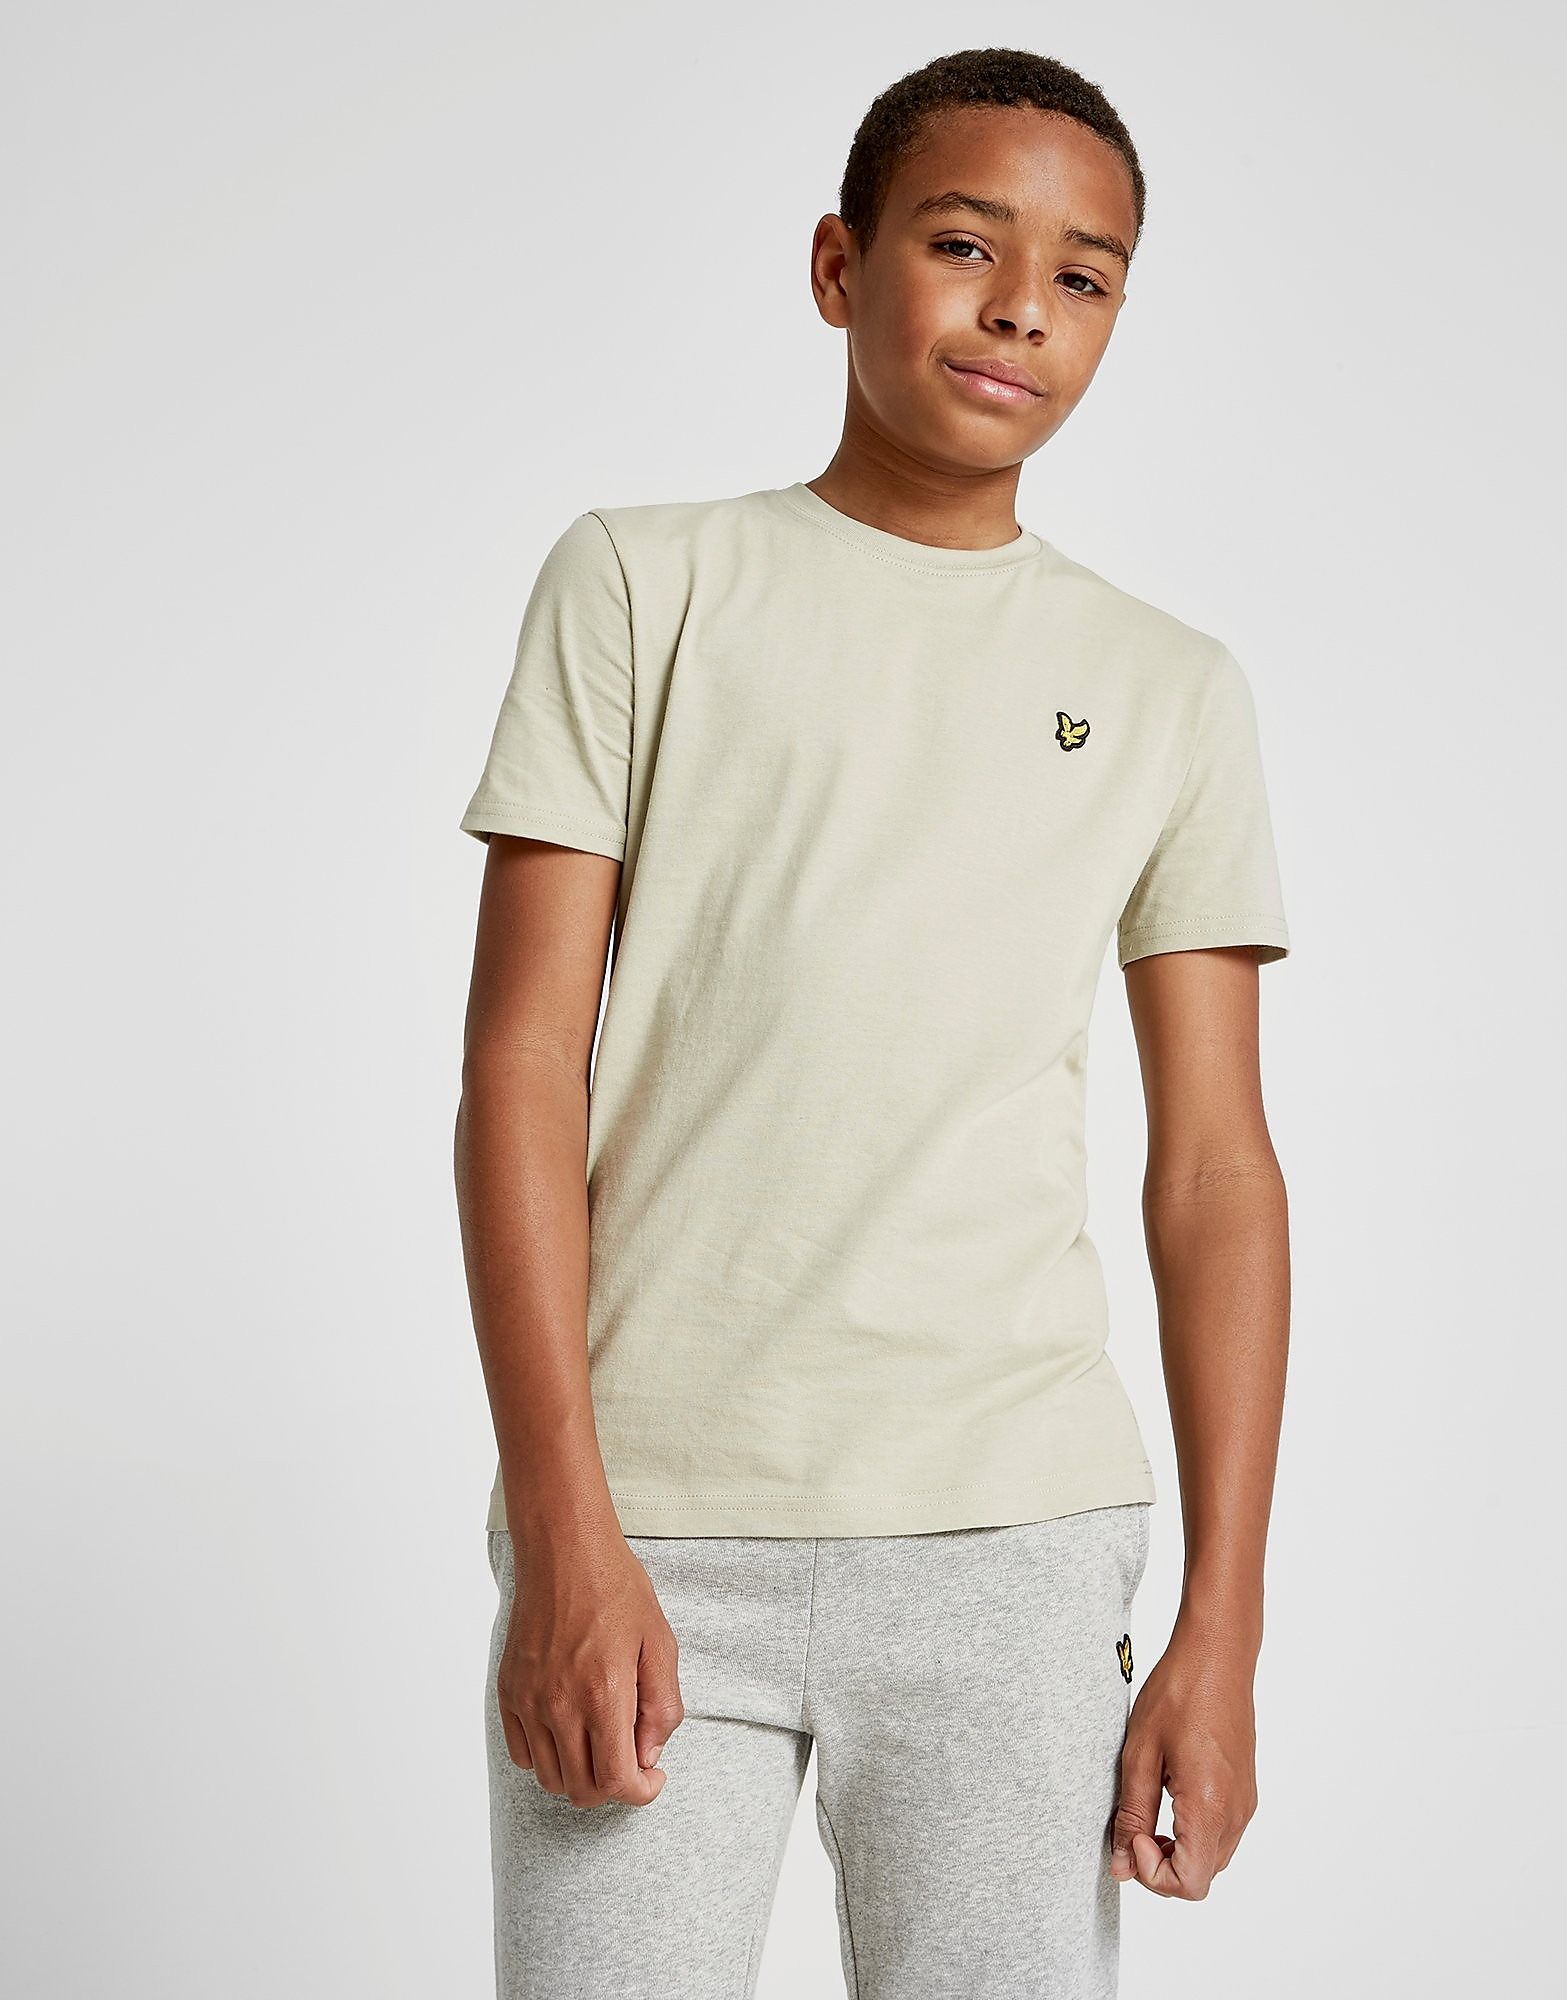 Lyle & Scott Short Sleeve Logo T-Shirt Junior - Beige - Kind